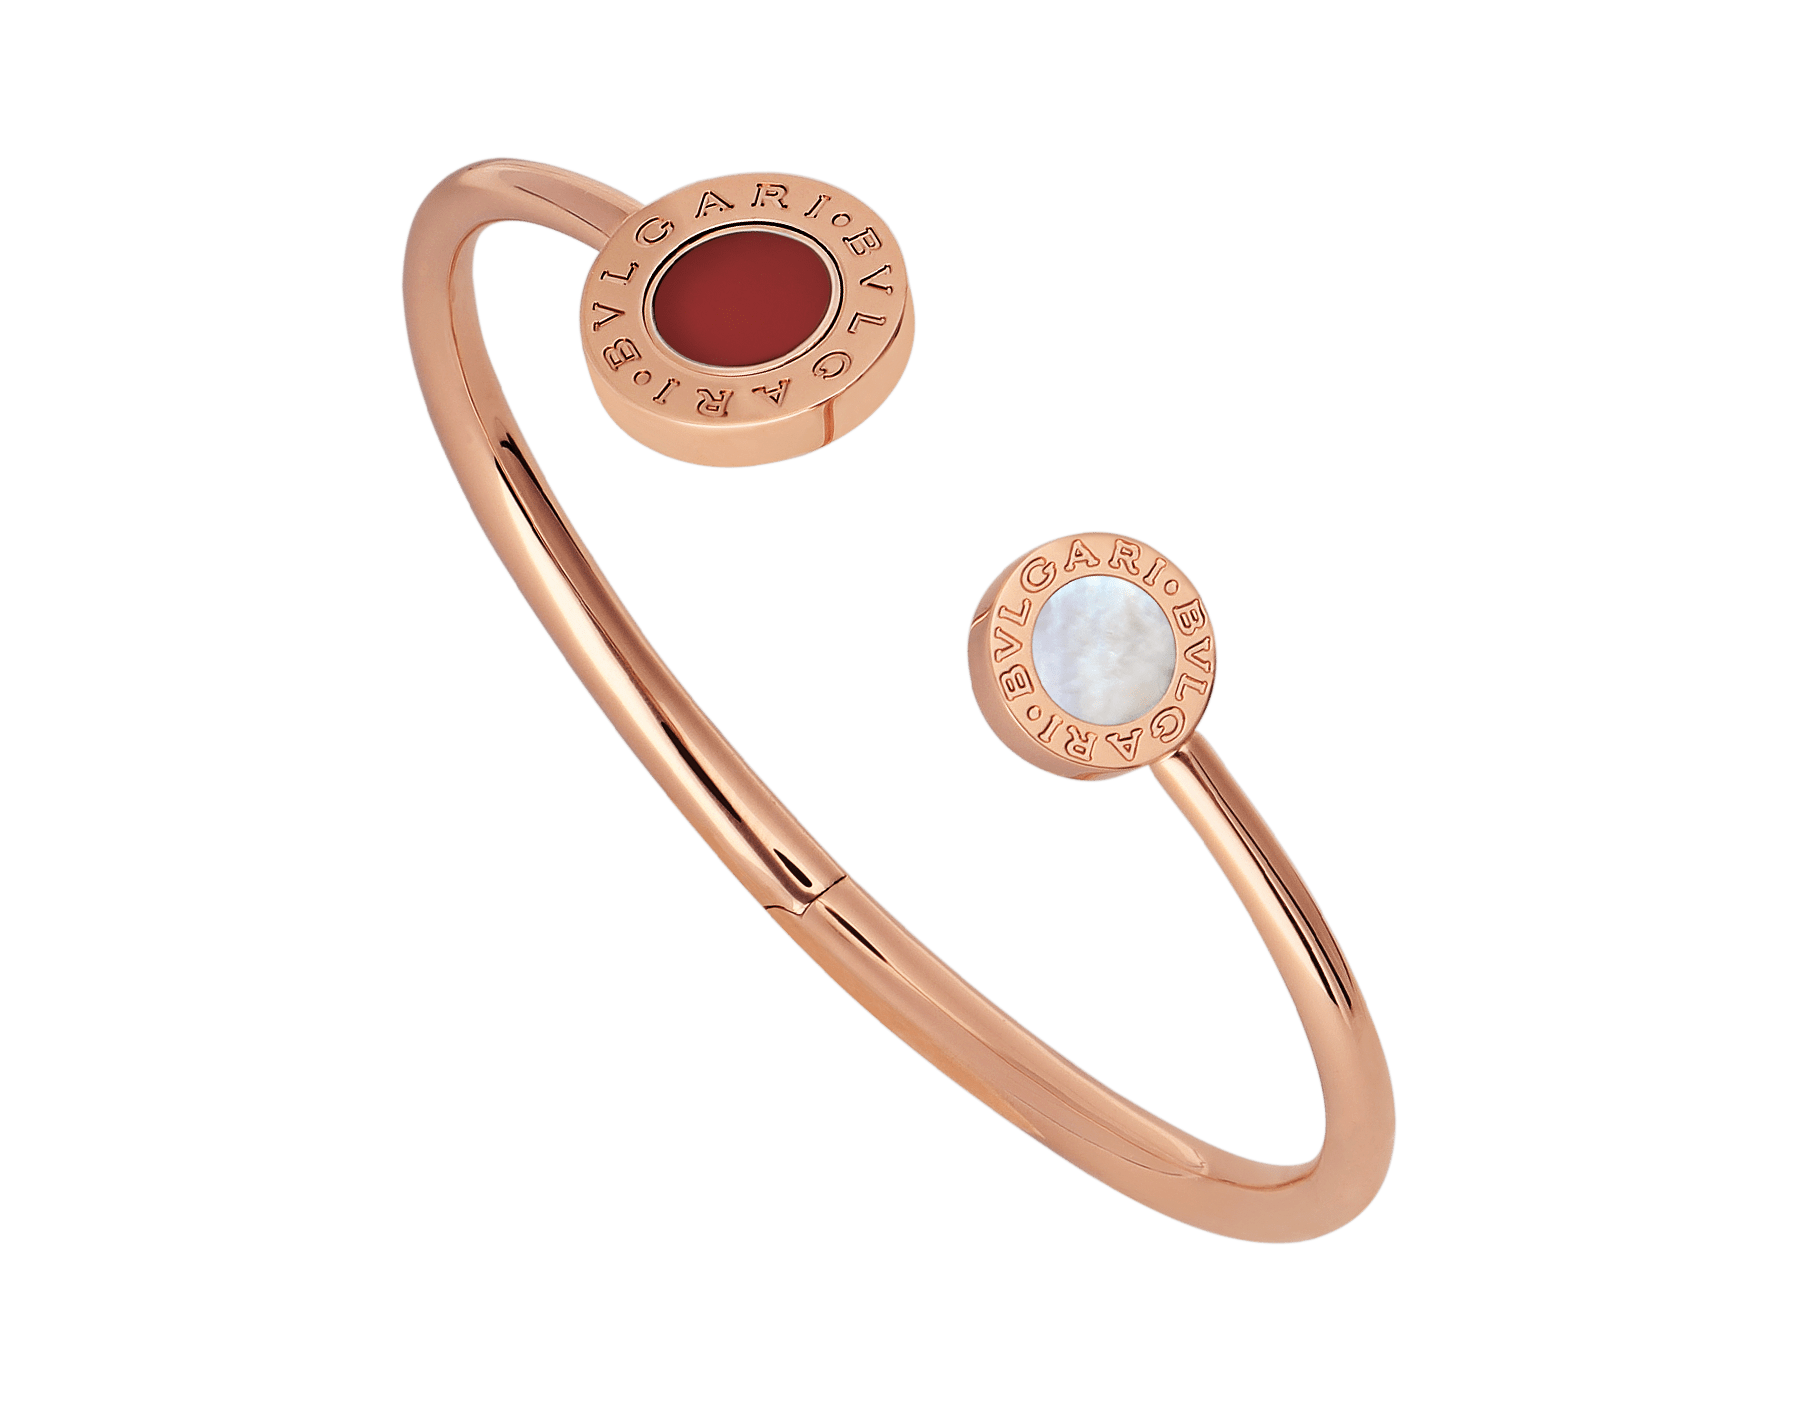 BVLGARI BVLGARI 18 kt rose gold flip bracelet set with mother-of-pearl and carnelian elements BR858280 image 1